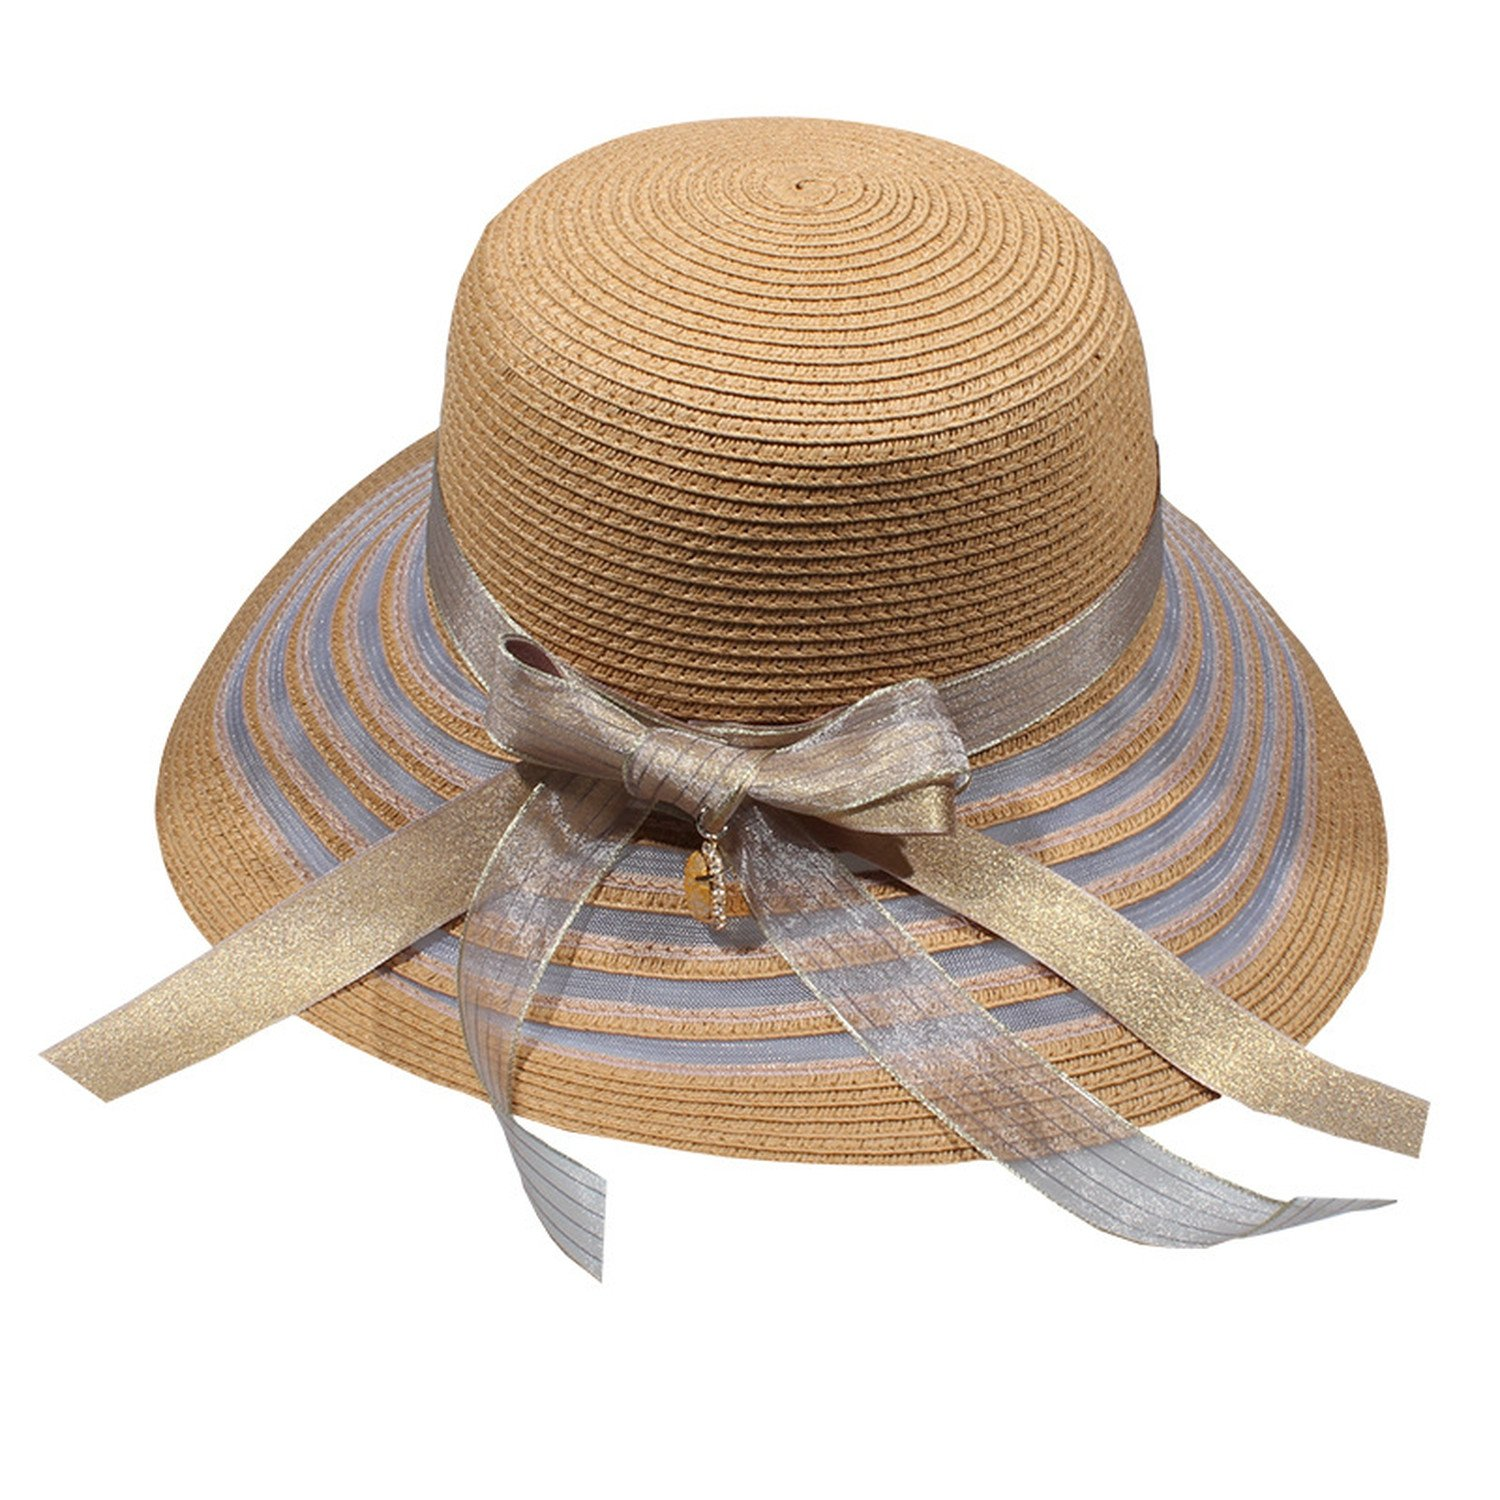 New South Lady Summer Butterfly Festival Seaside Leisure Double-layer Ribbon roots Large Women's straw hat,Khaki,adjustable